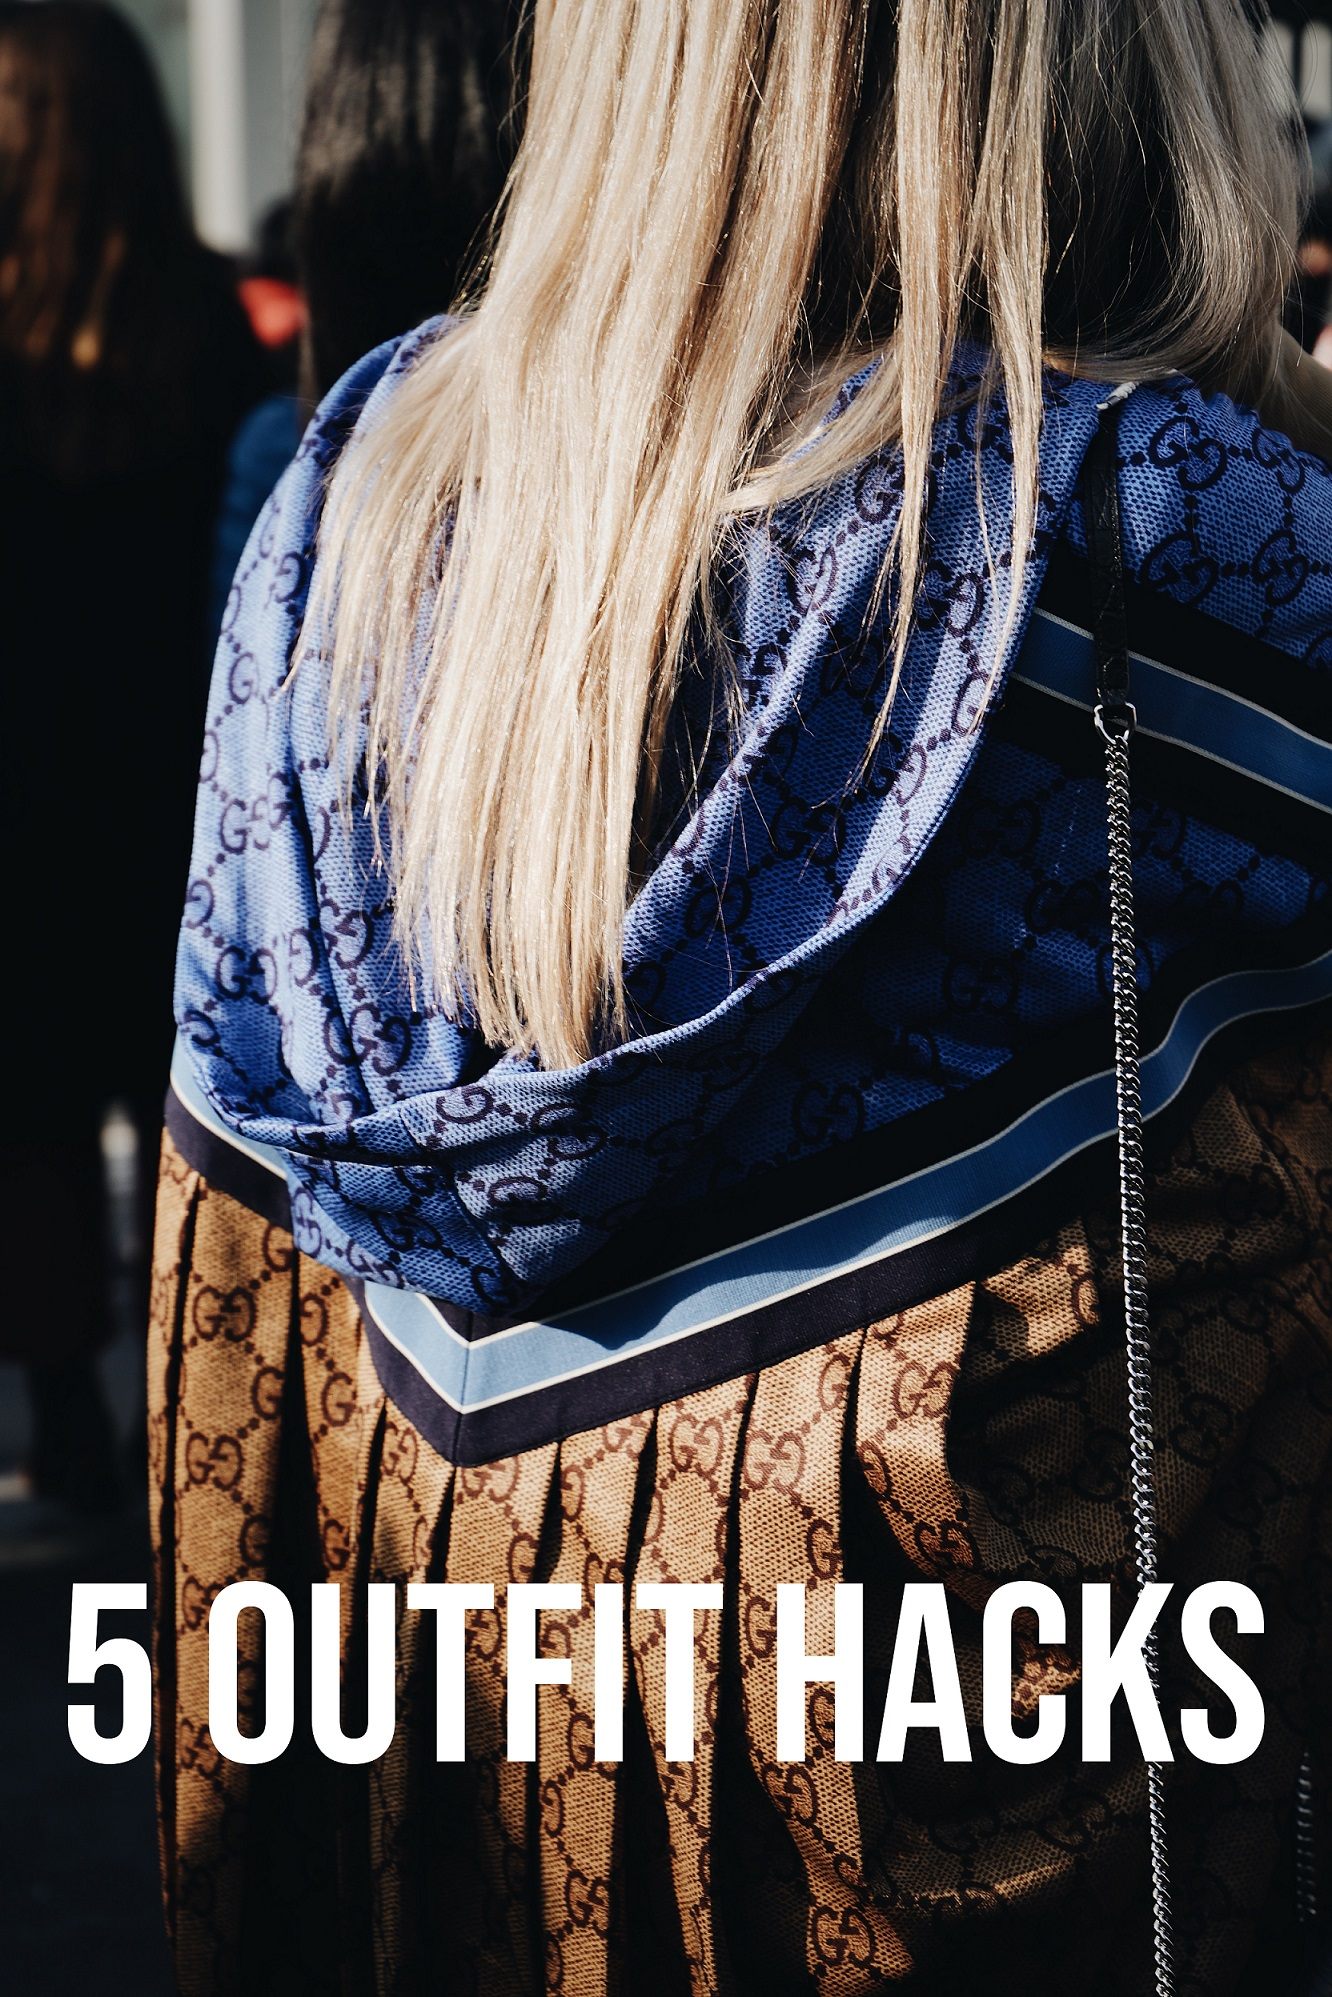 5 Outfit Details To Pay Attention To